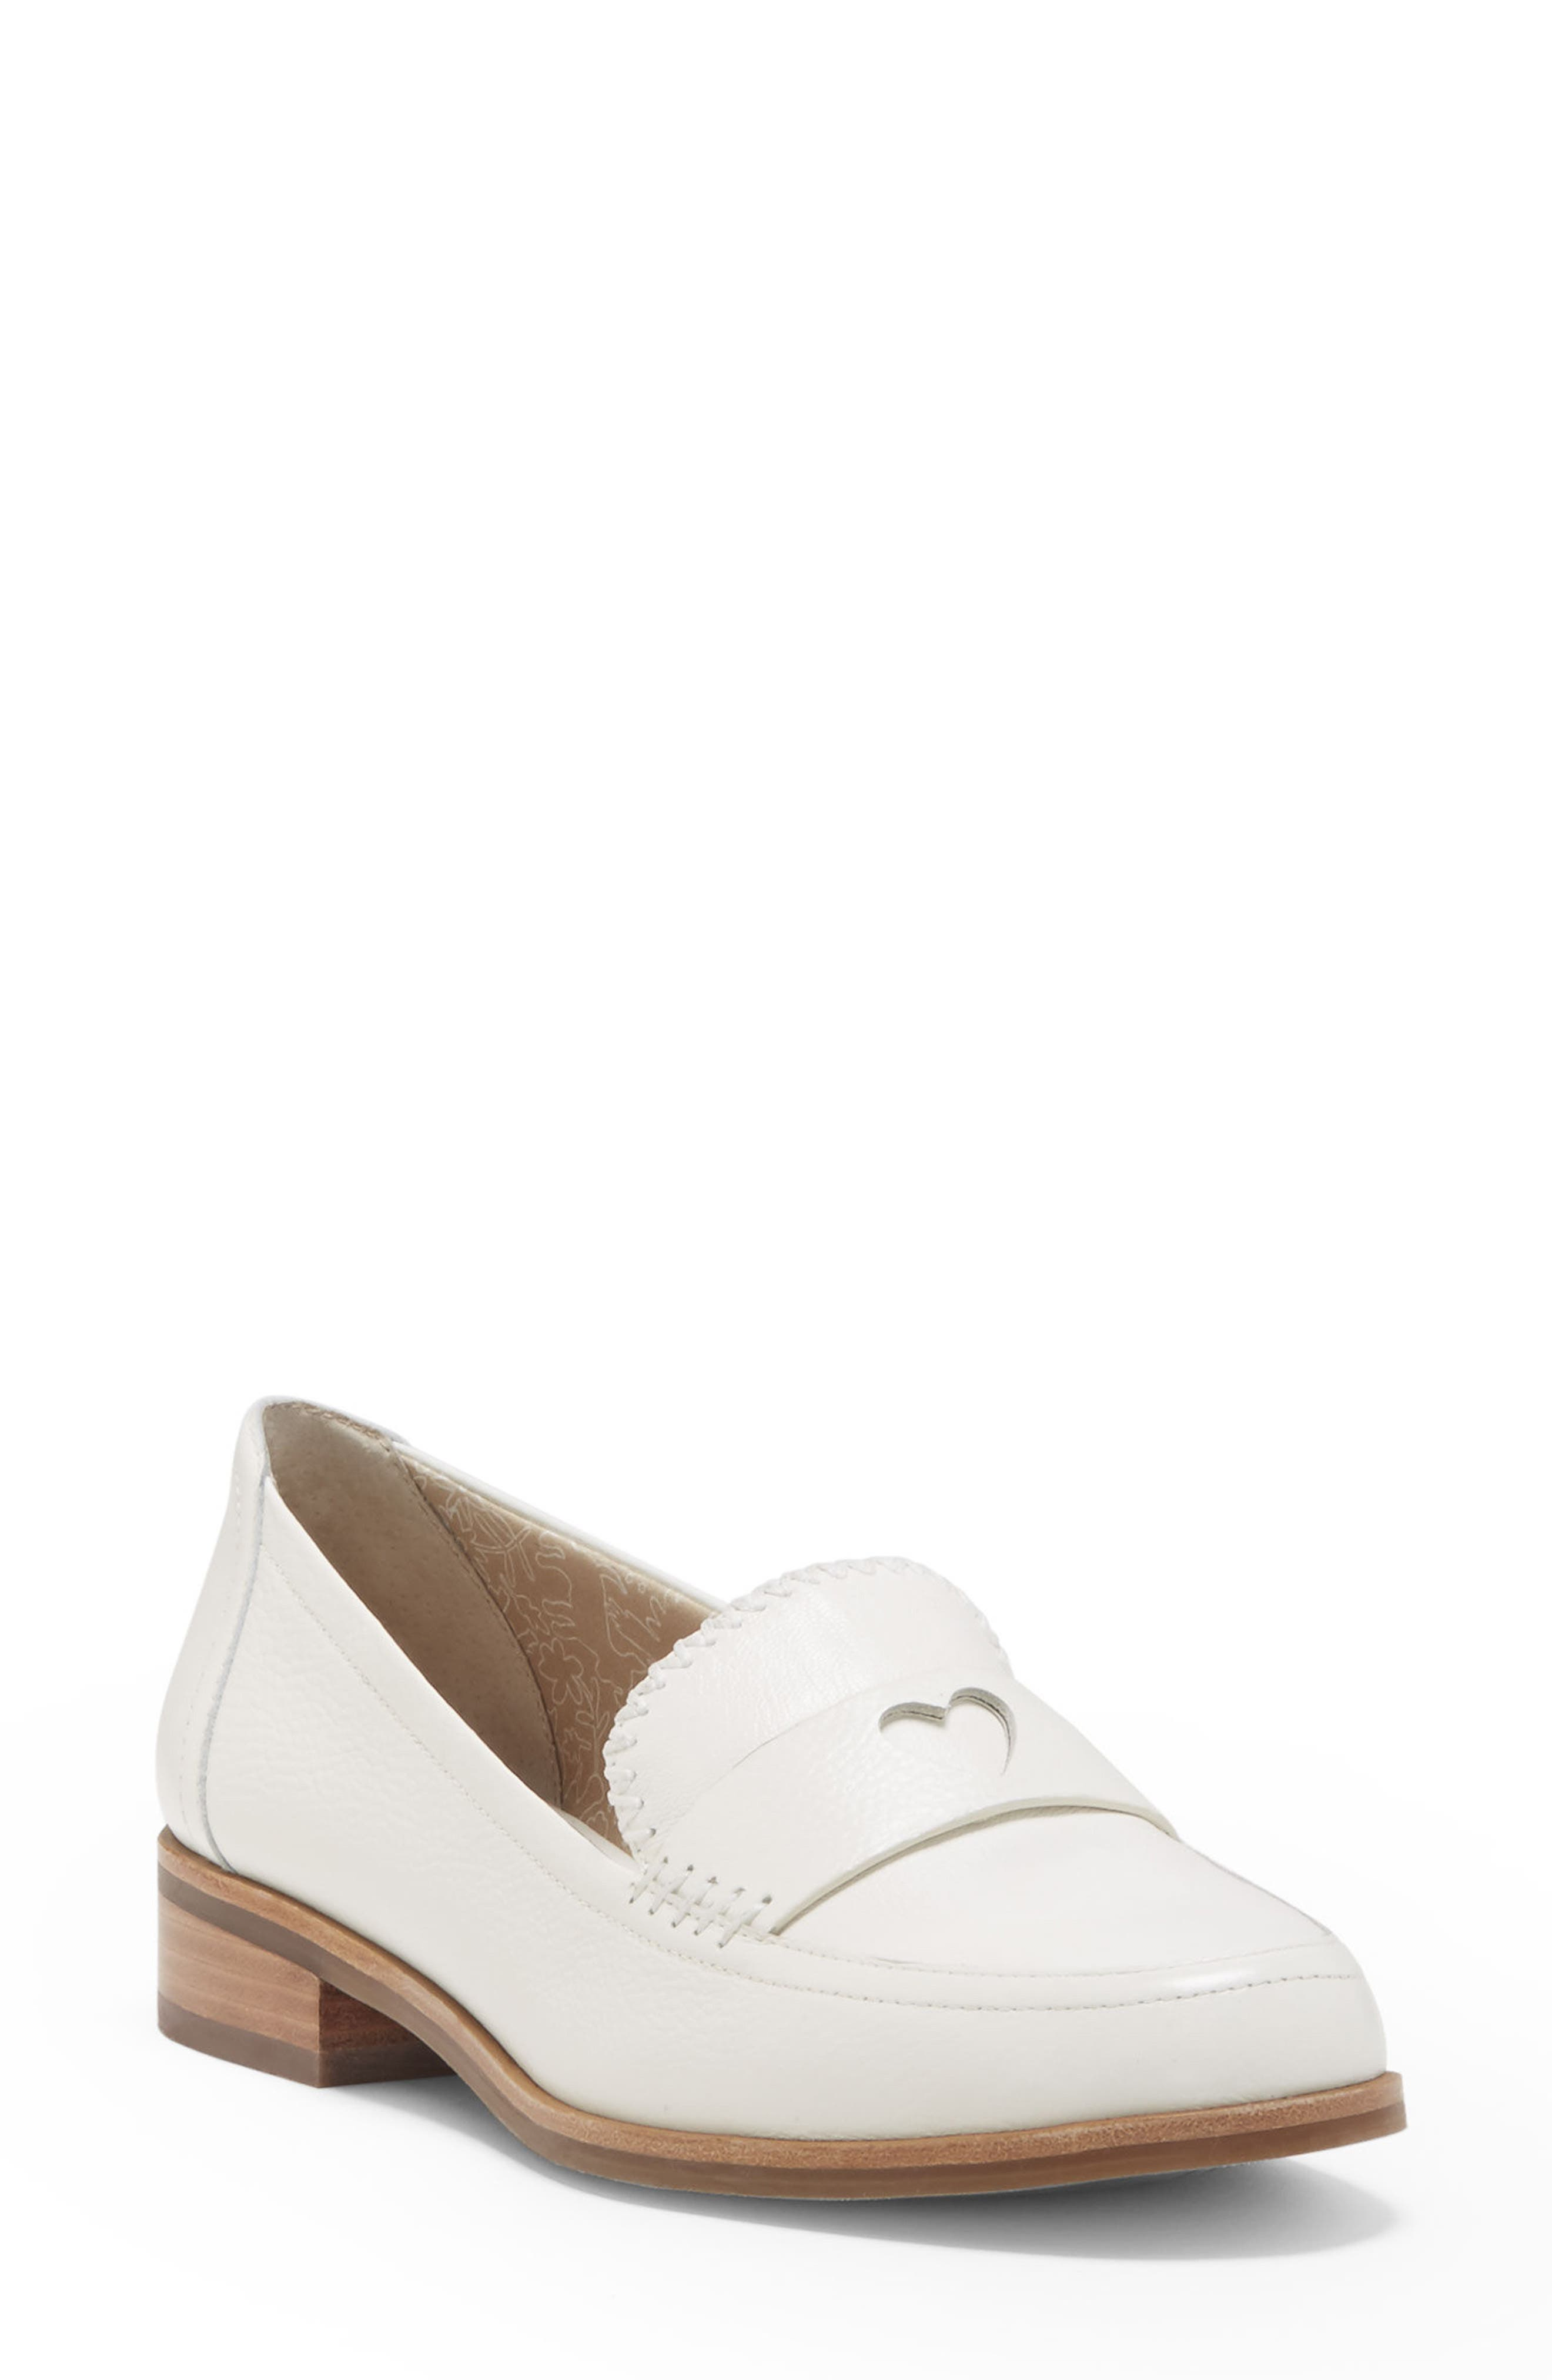 Laddie Loafer,                             Main thumbnail 1, color,                             MILK LEATHER